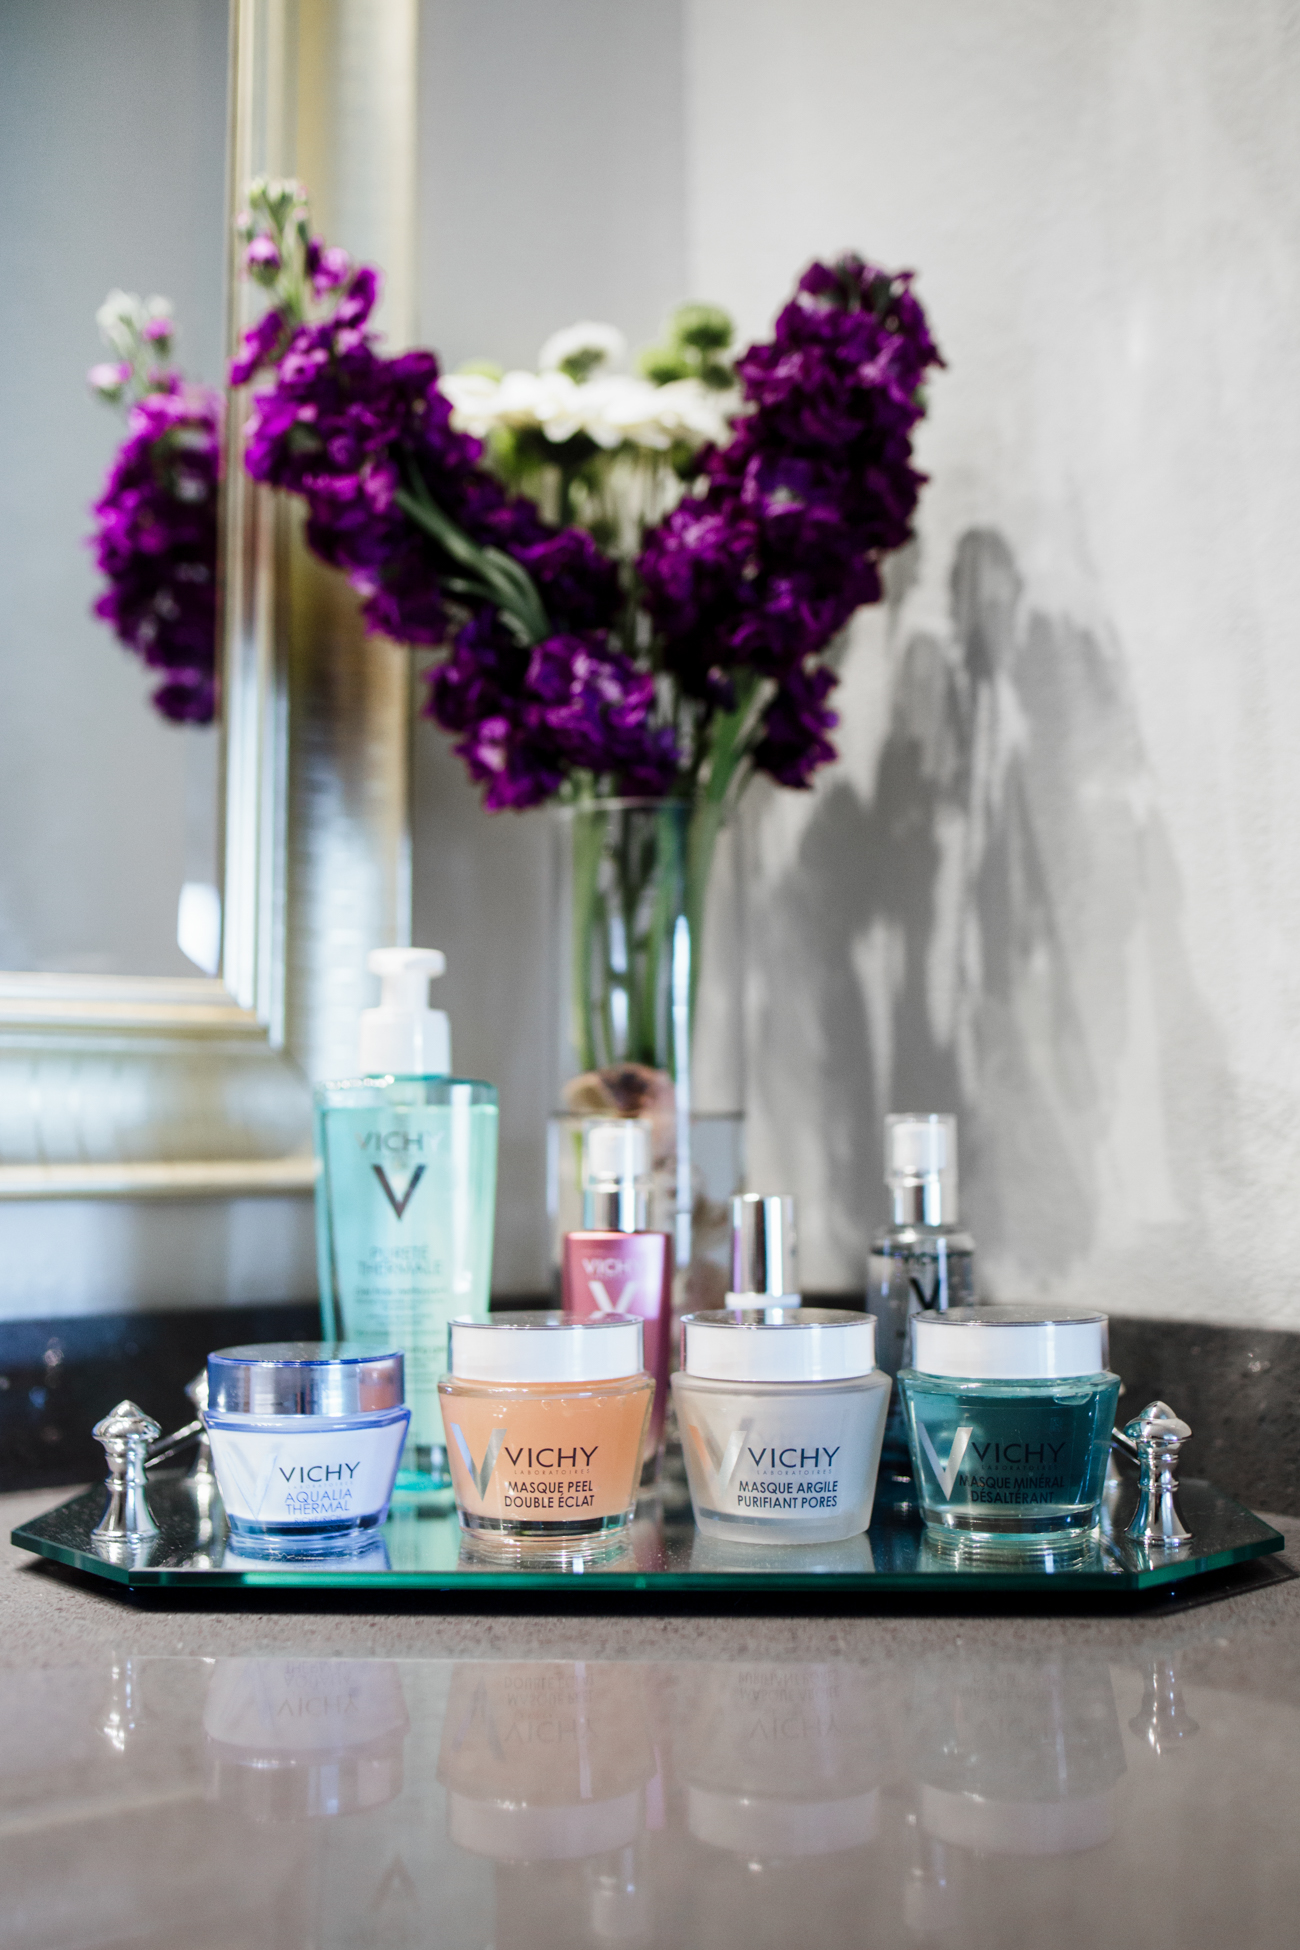 Vichy Favorite Products